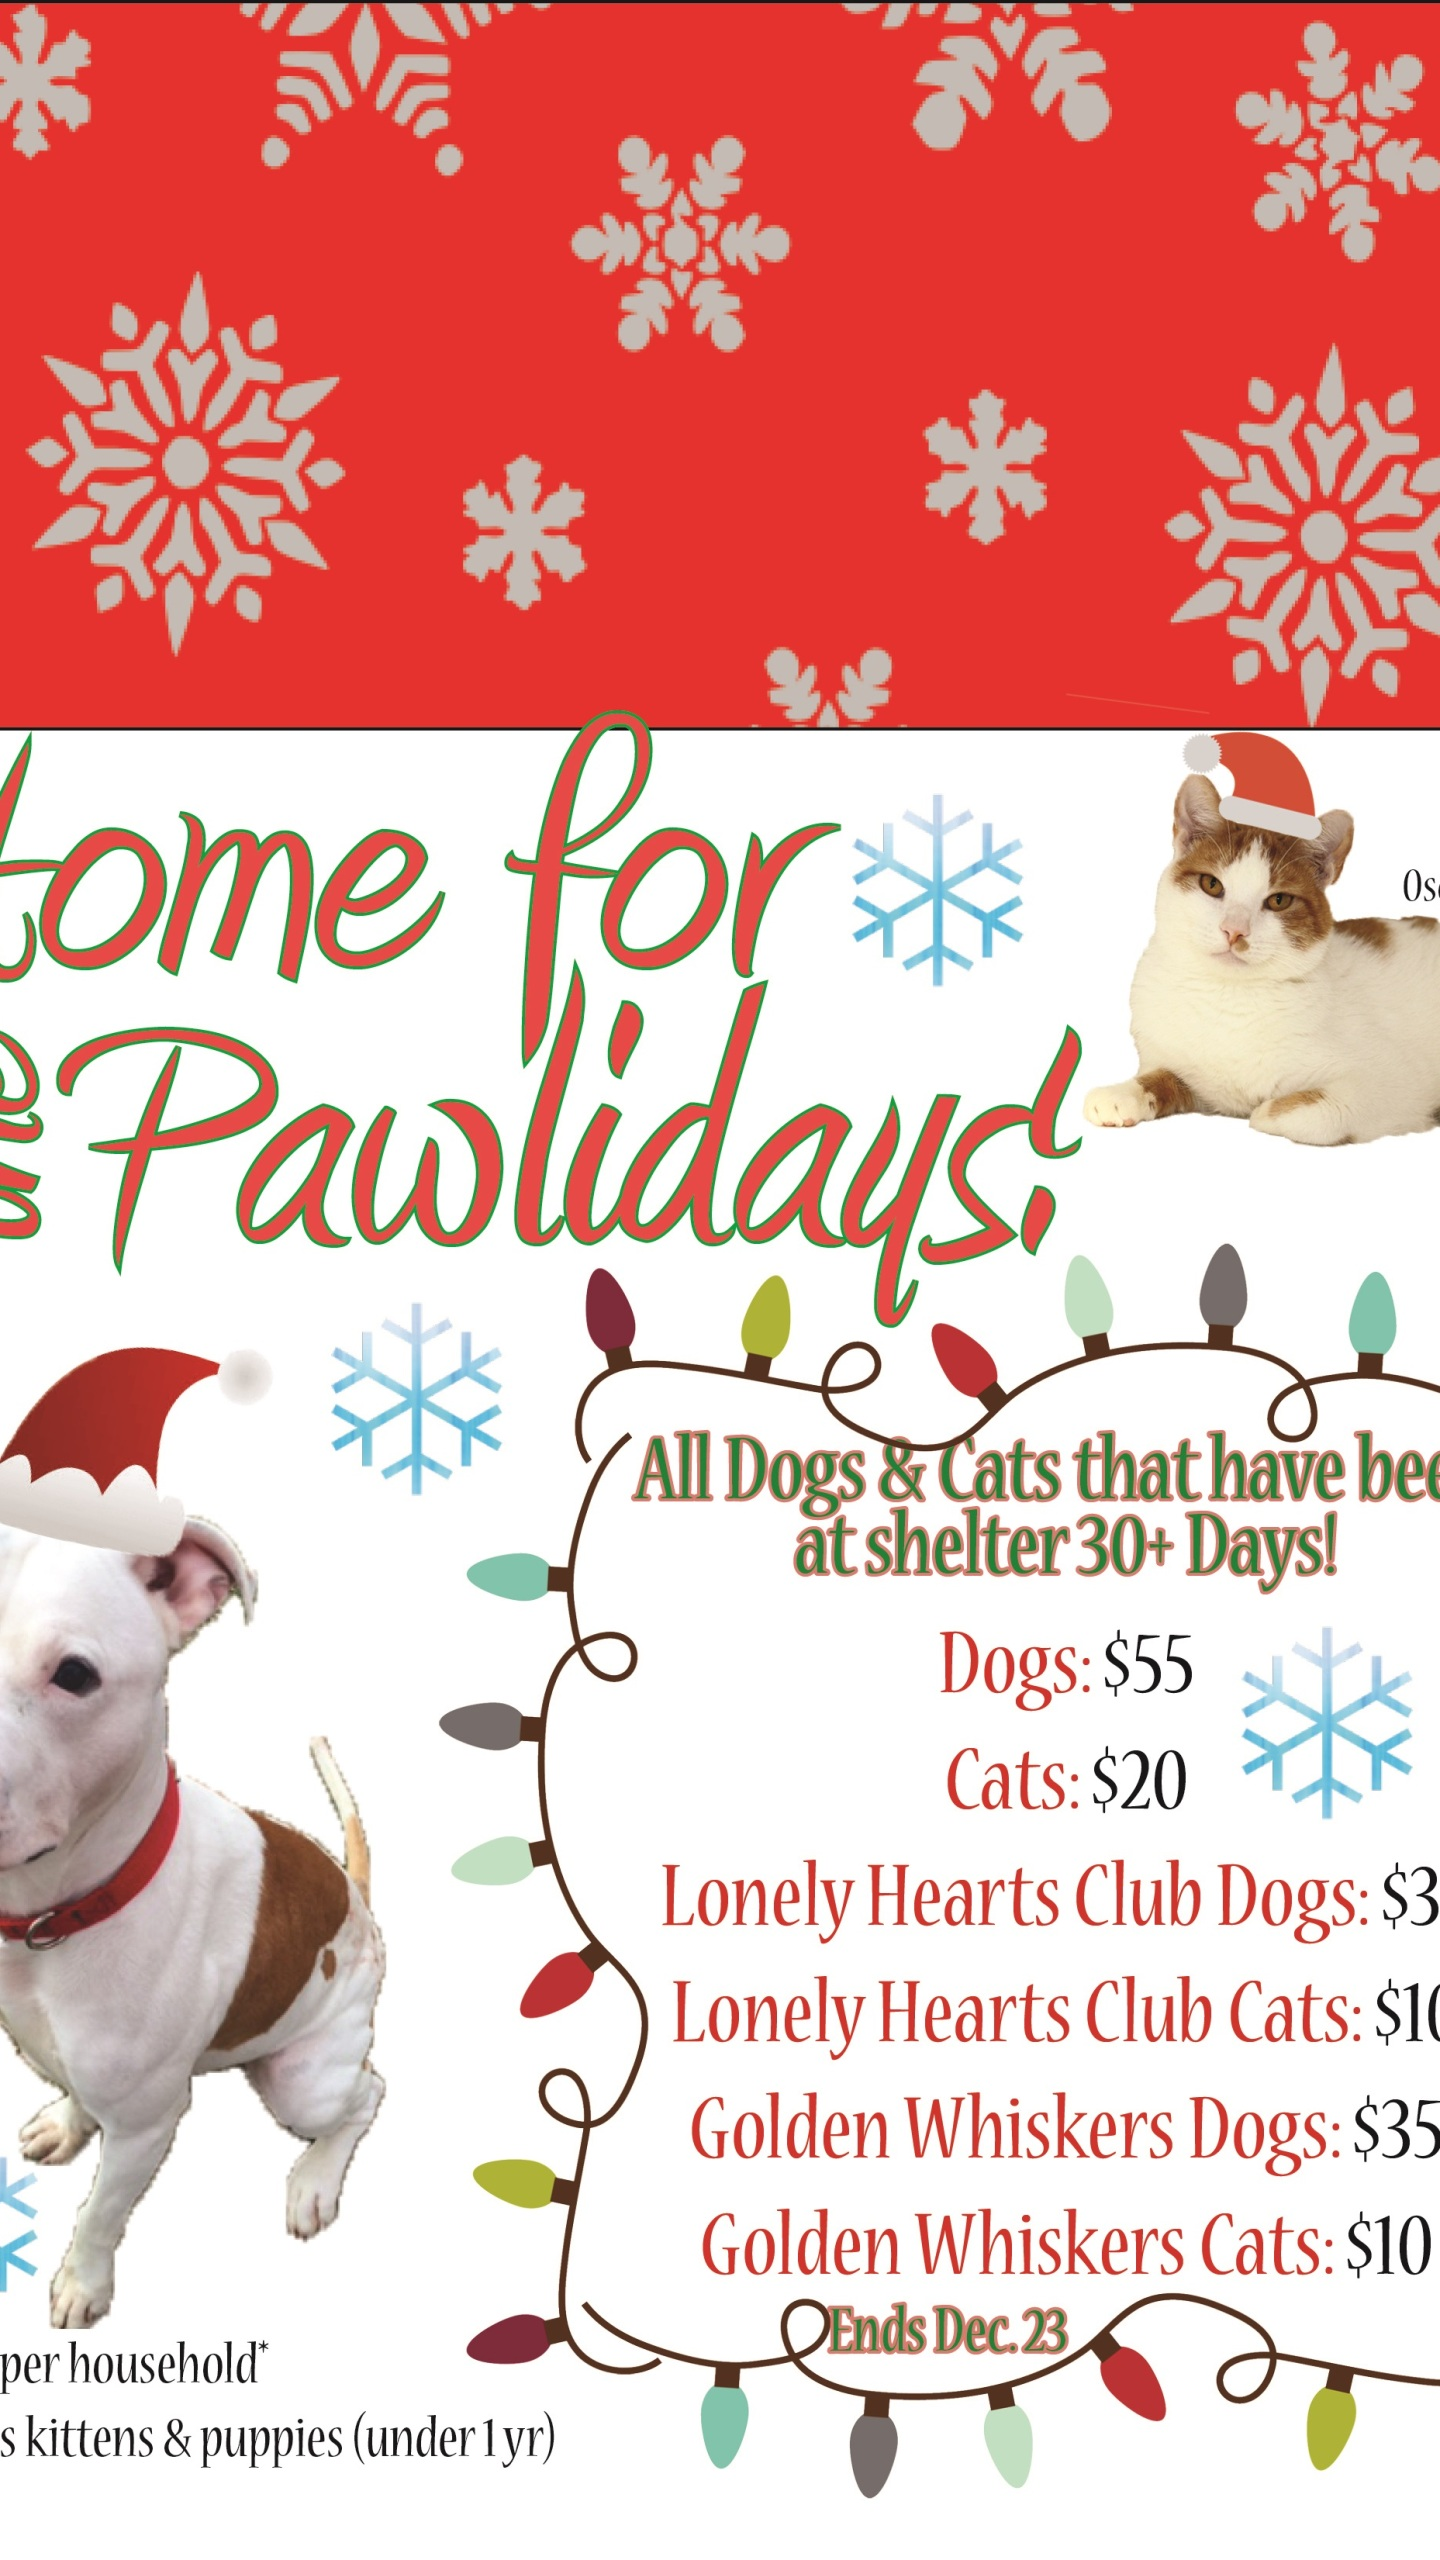 Home for the Pawlidays Flyer_1449853249572.jpg